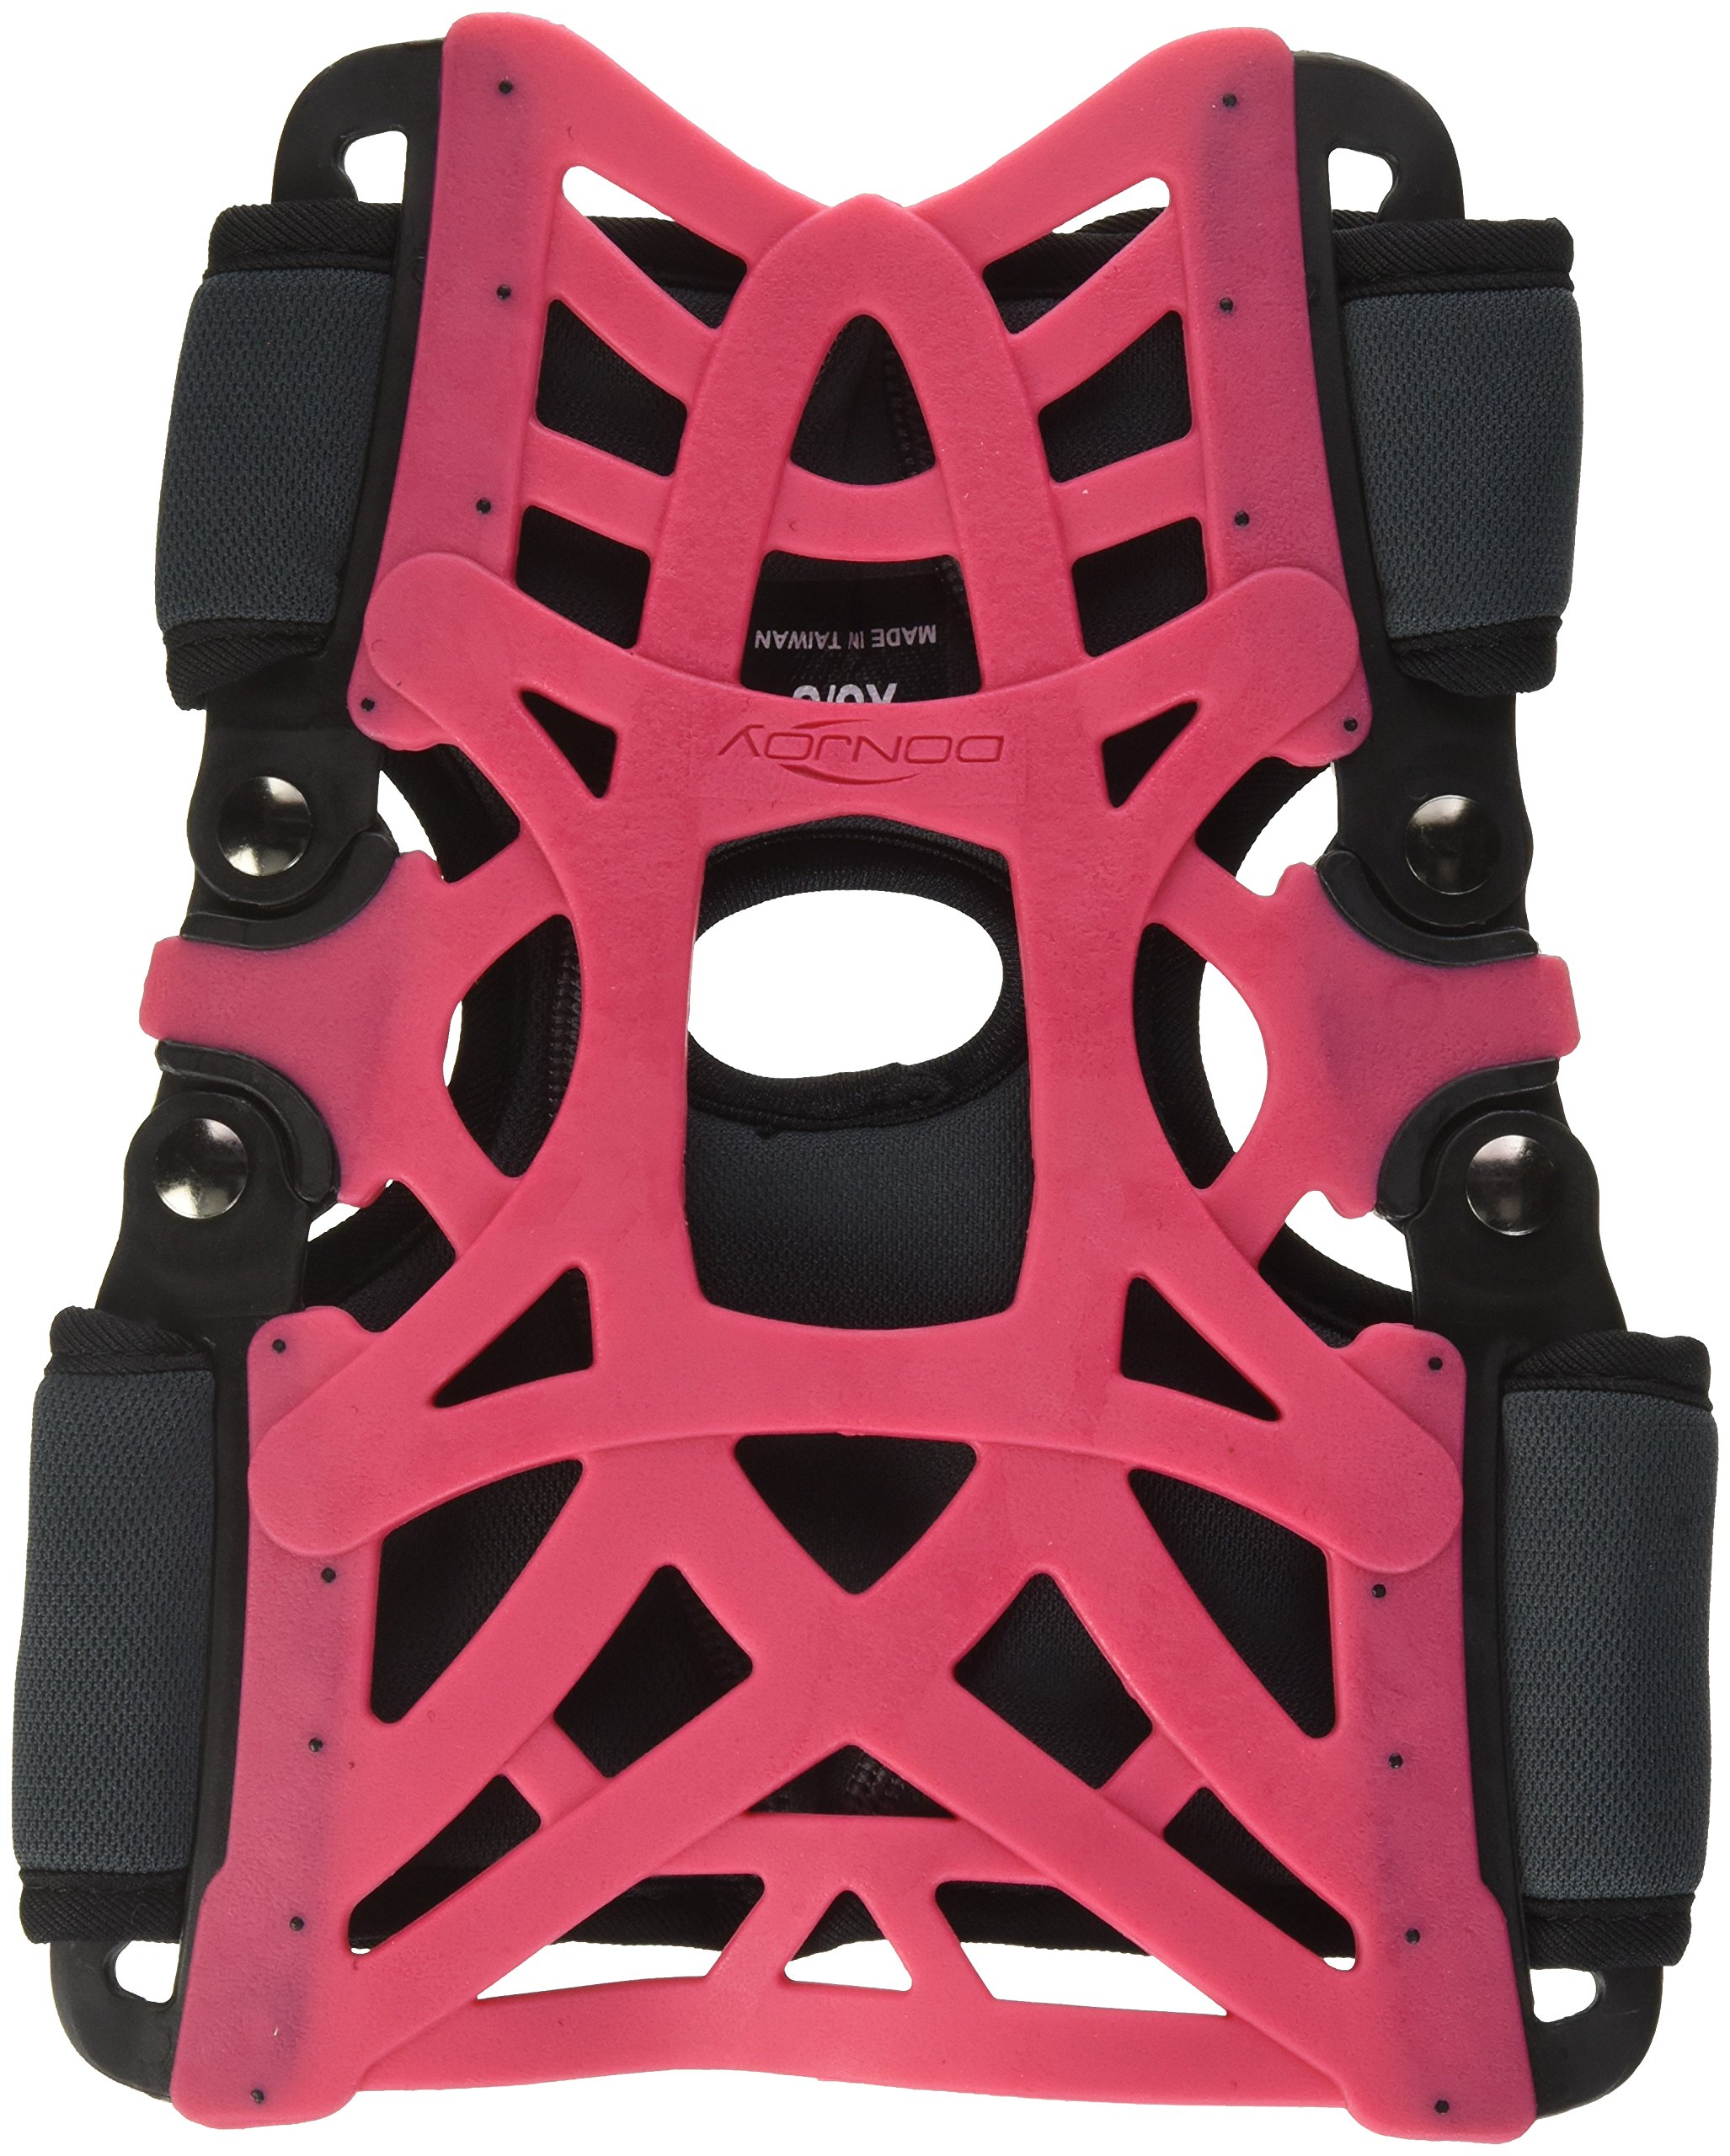 DonJoy Reaction Web Knee Support Brace with Compression Undersleeve: Pink, X-Small/Small by DonJoy